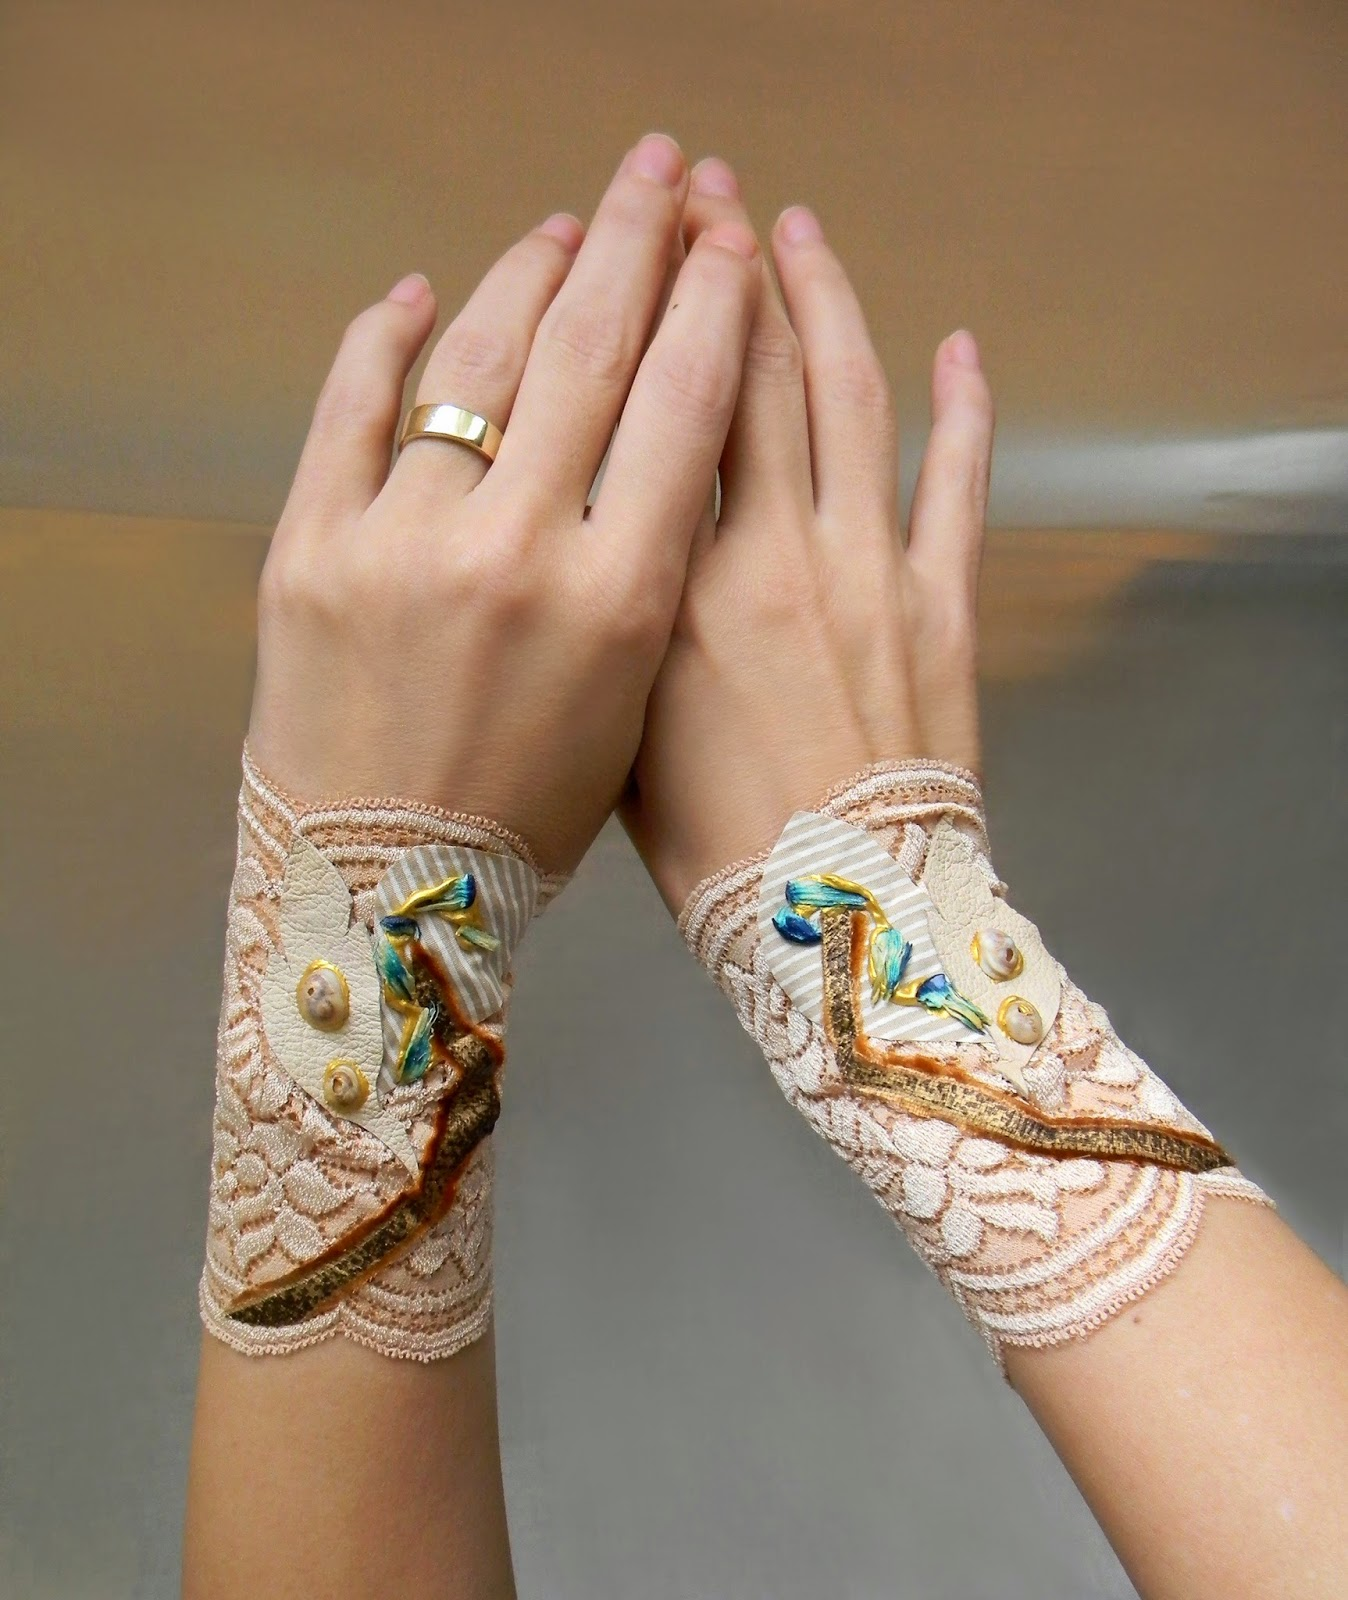 Floral Lace Romantic Wrist Cuffs